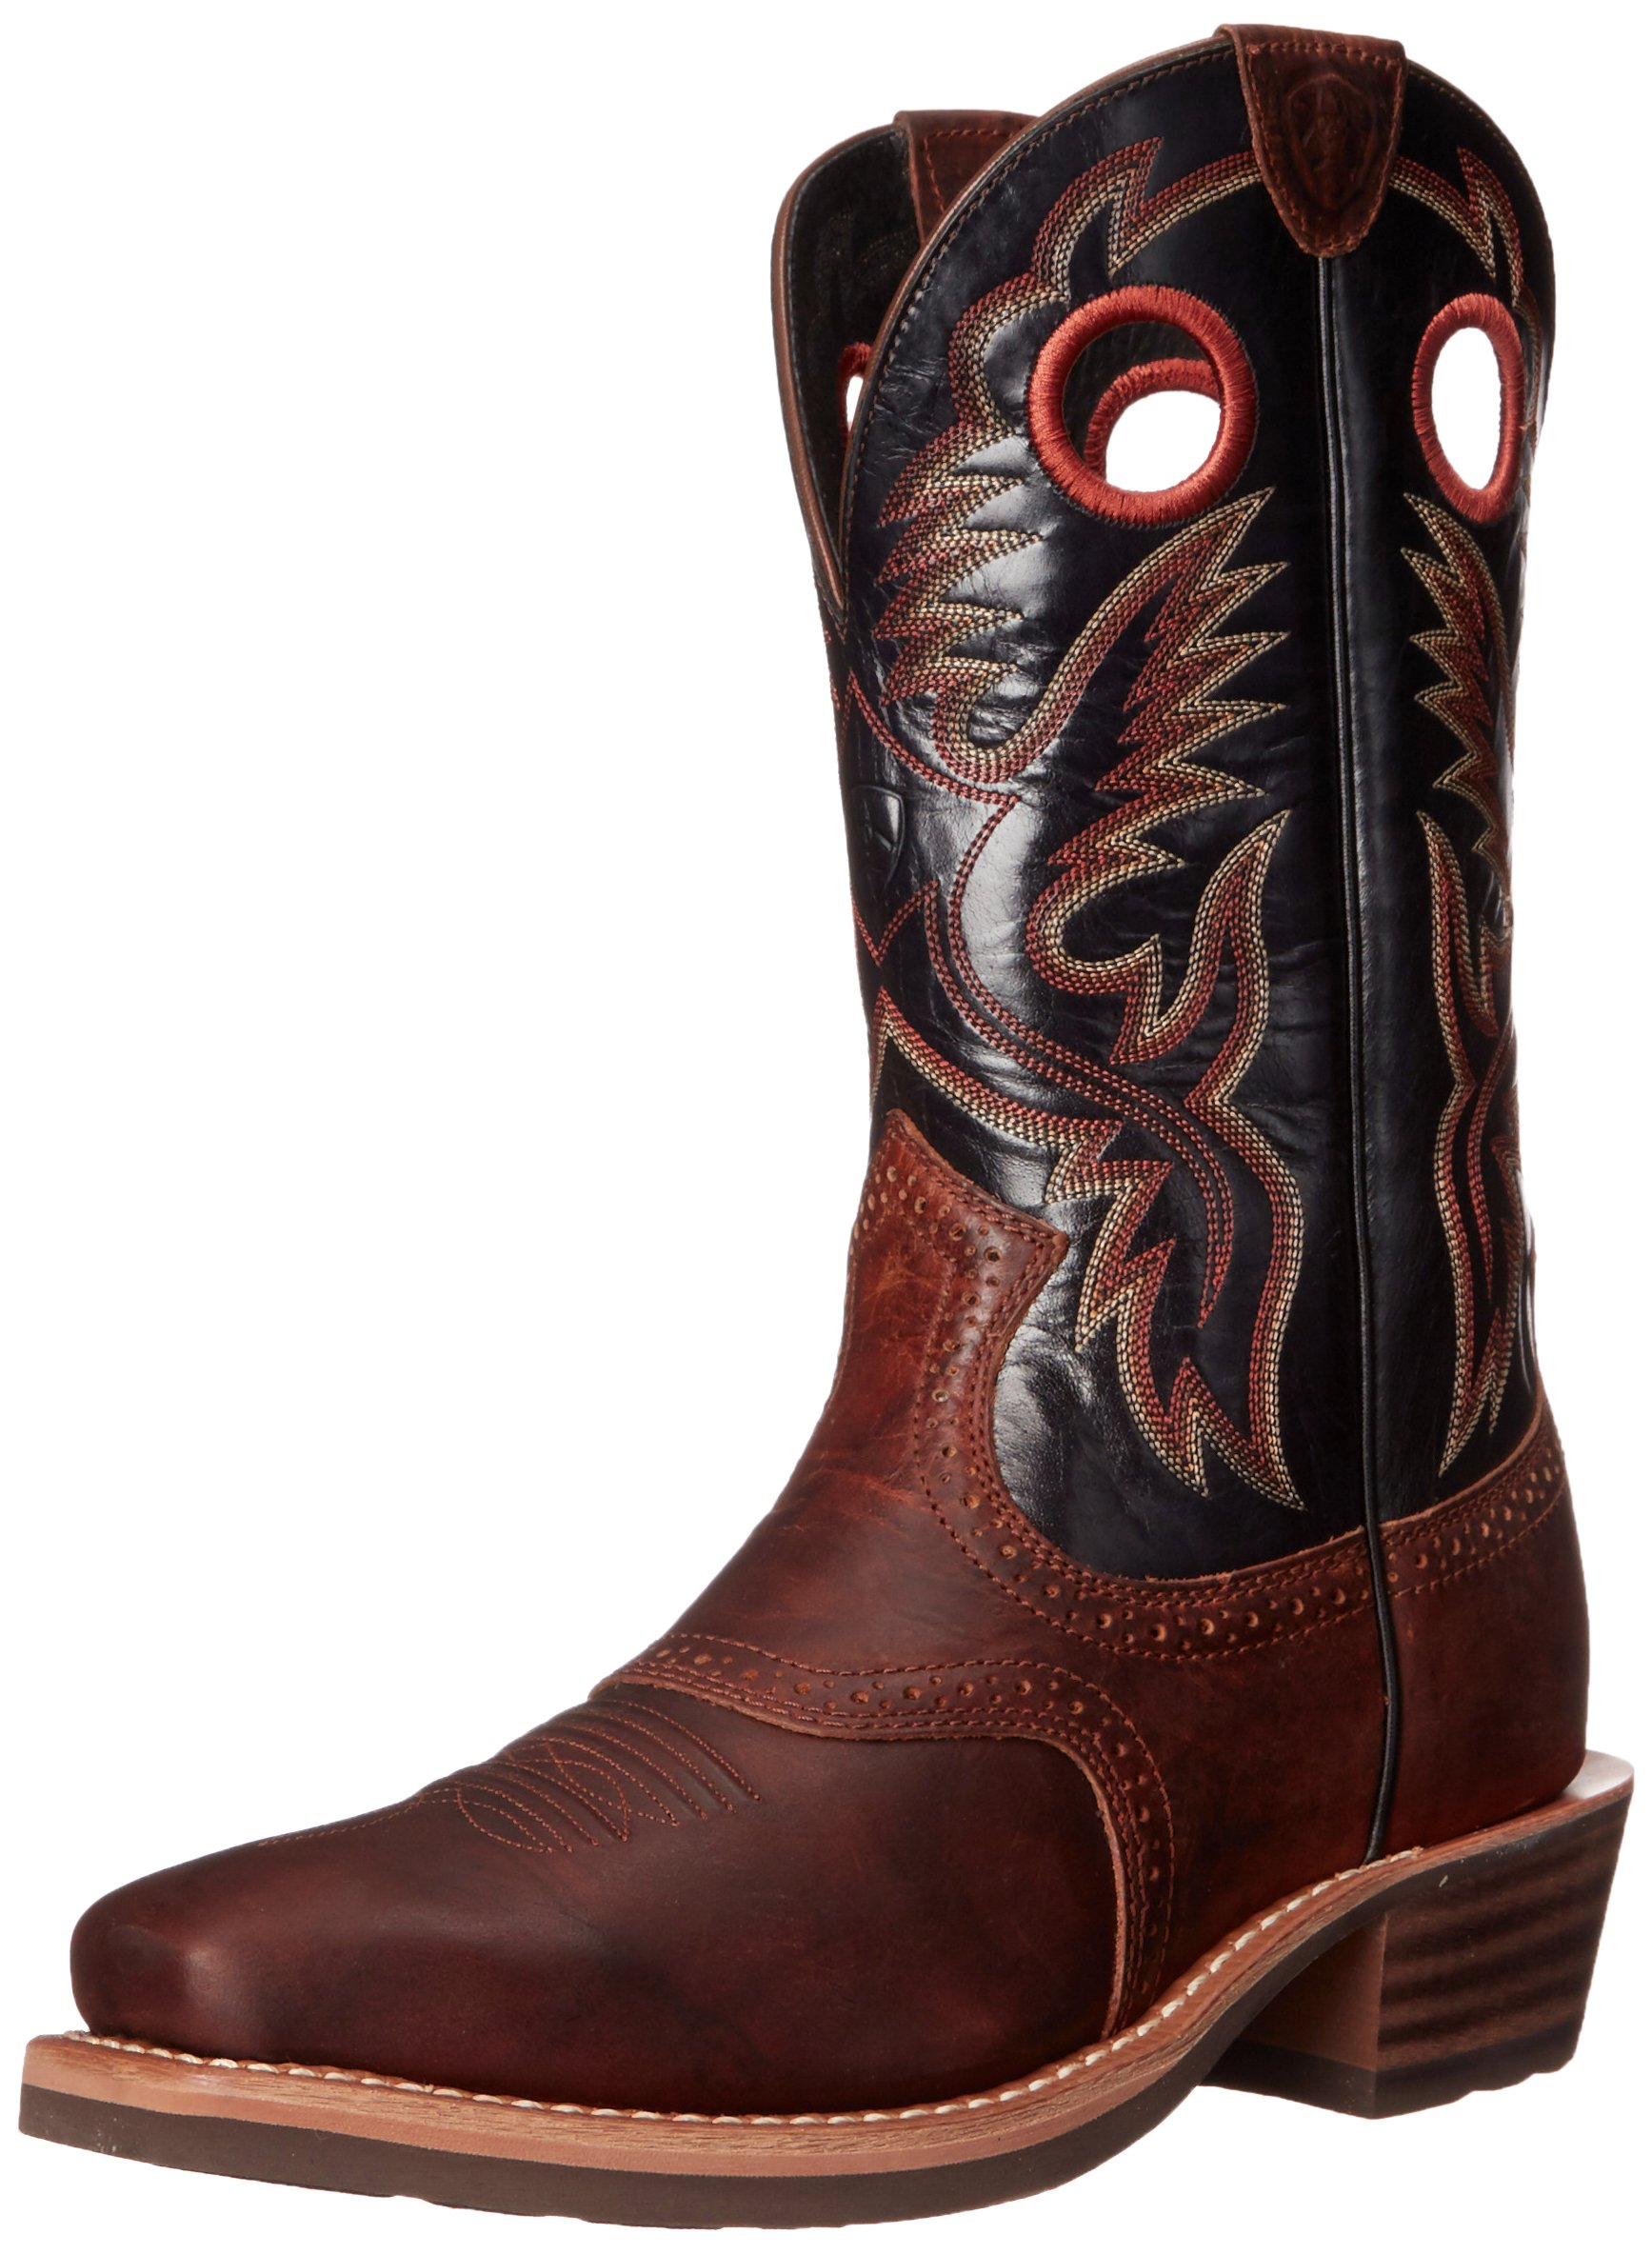 Ariat Men's Heritage Roughstock Western Cowboy Boot, Bar Top Brown/Shiny Black, 10.5 2E US